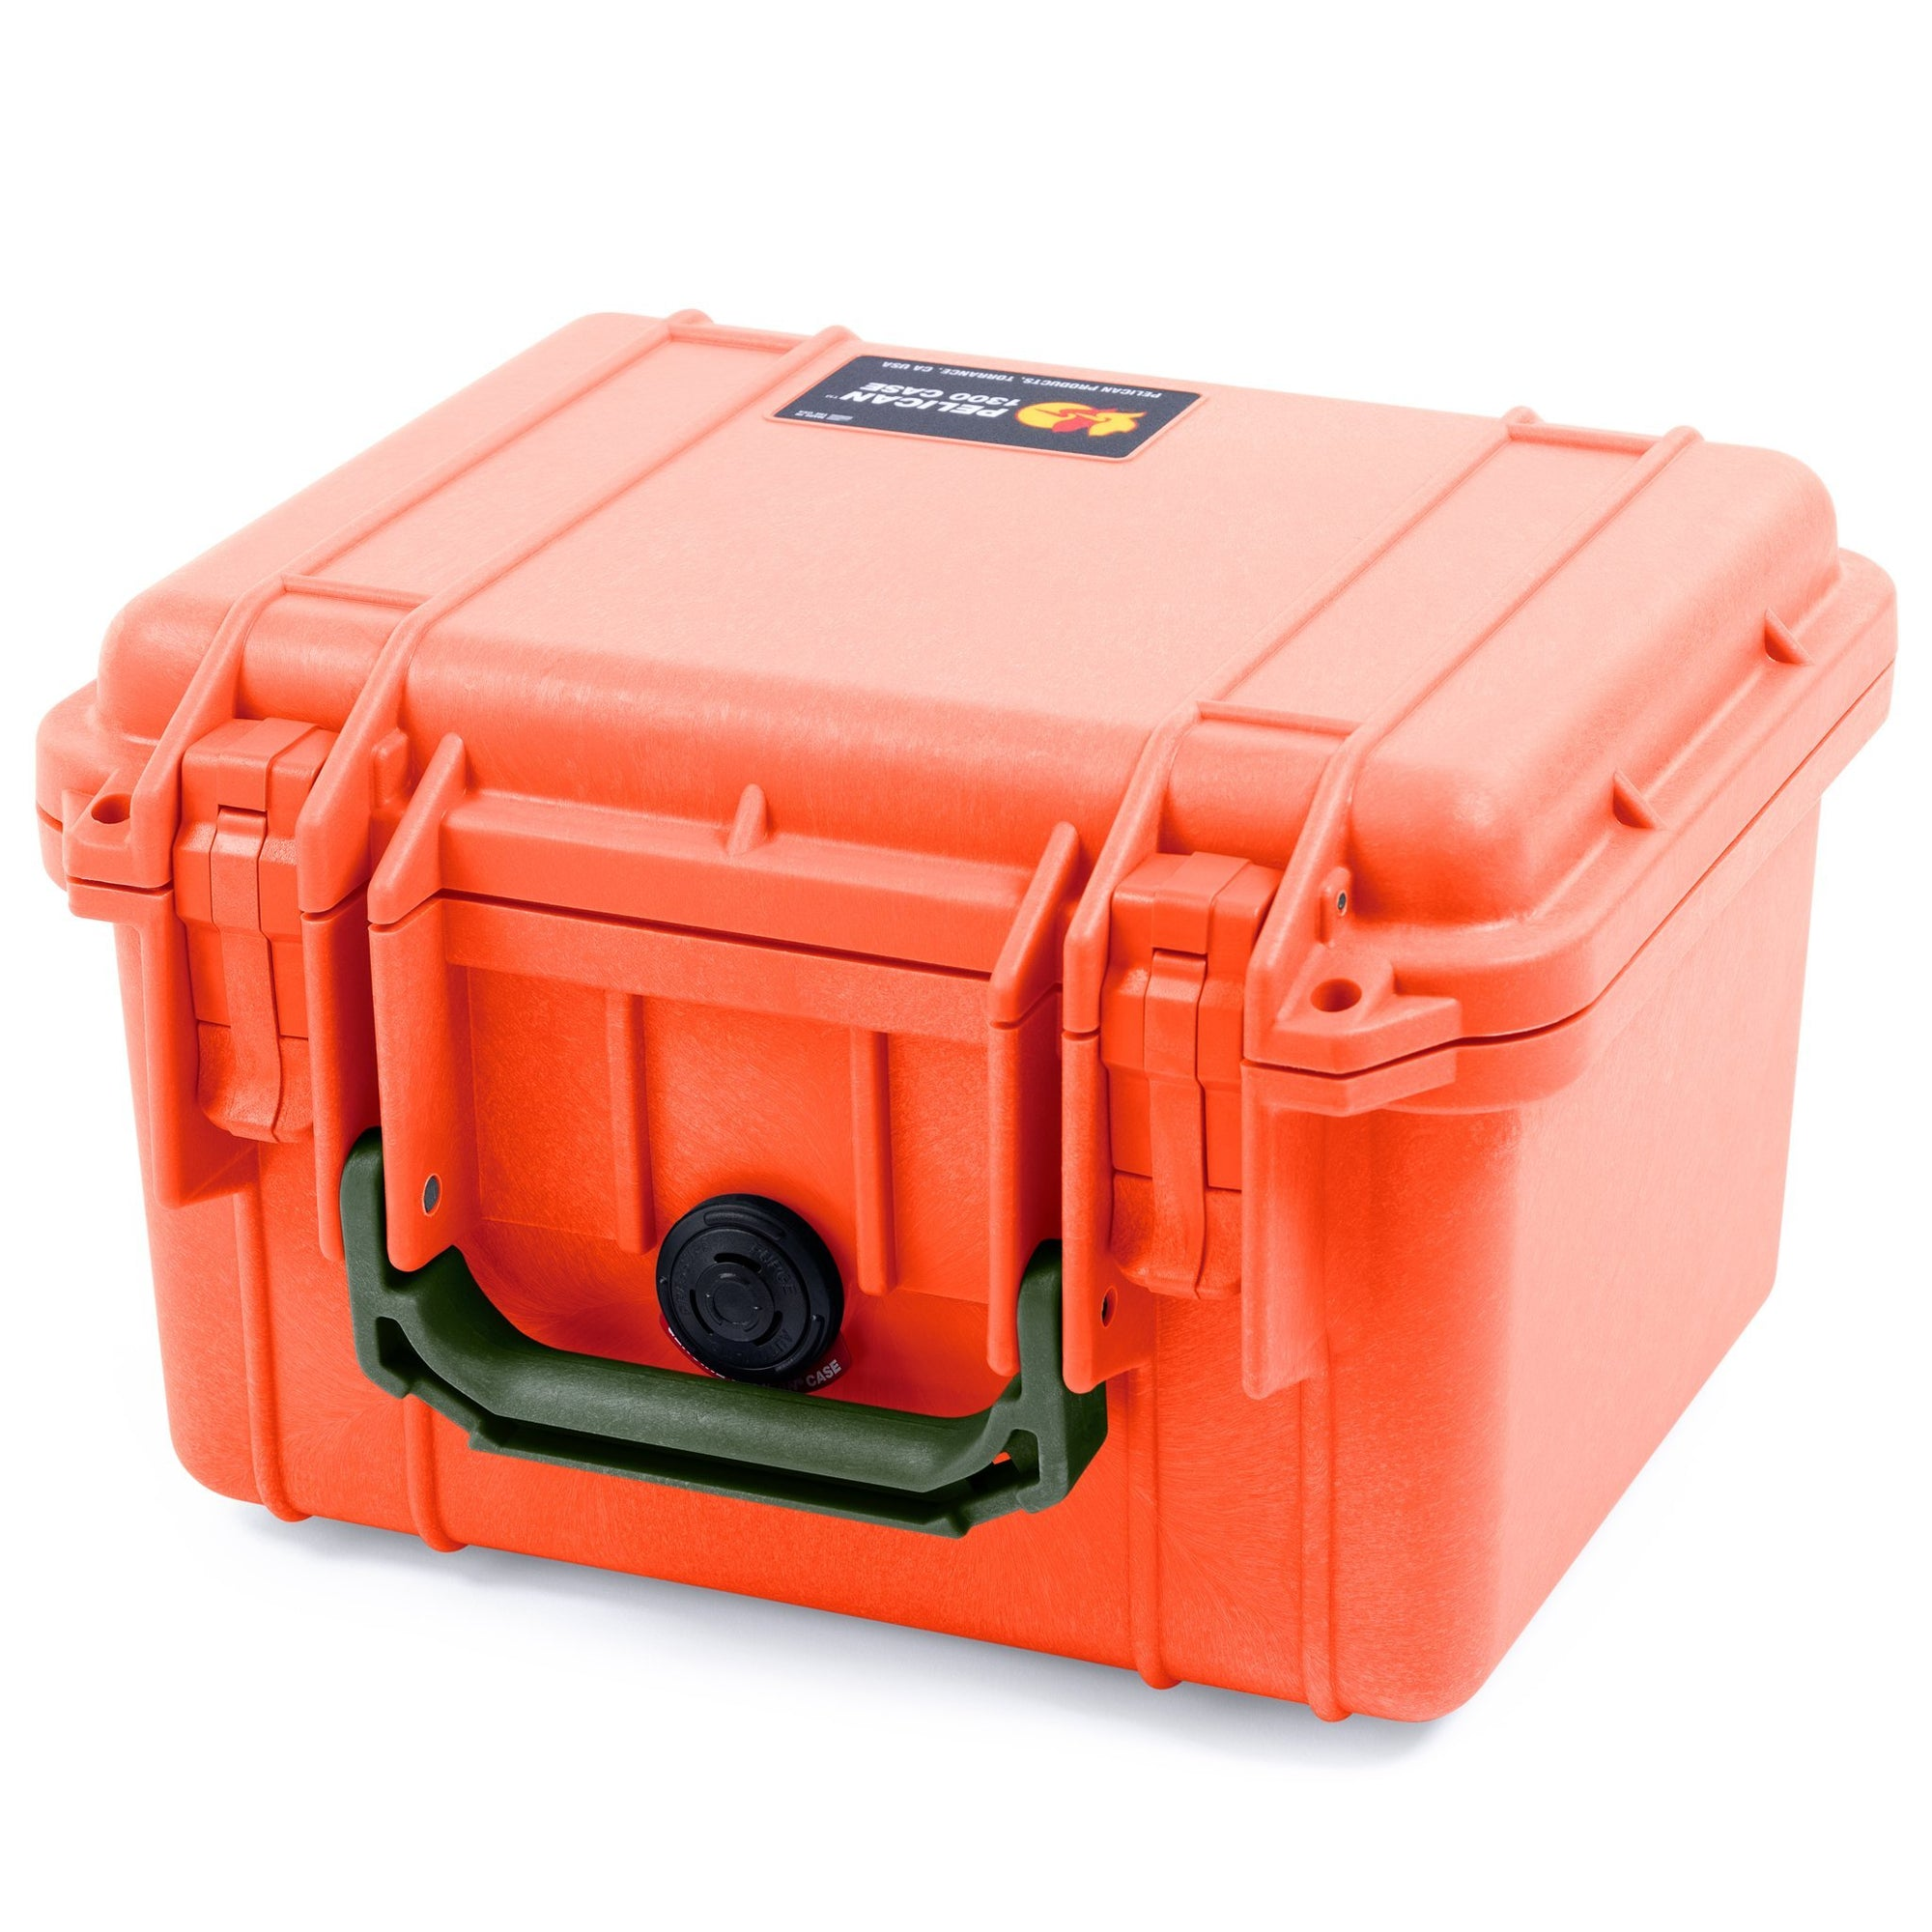 Pelican 1300 Case, Orange with OD Green Handle - Pelican Color Case